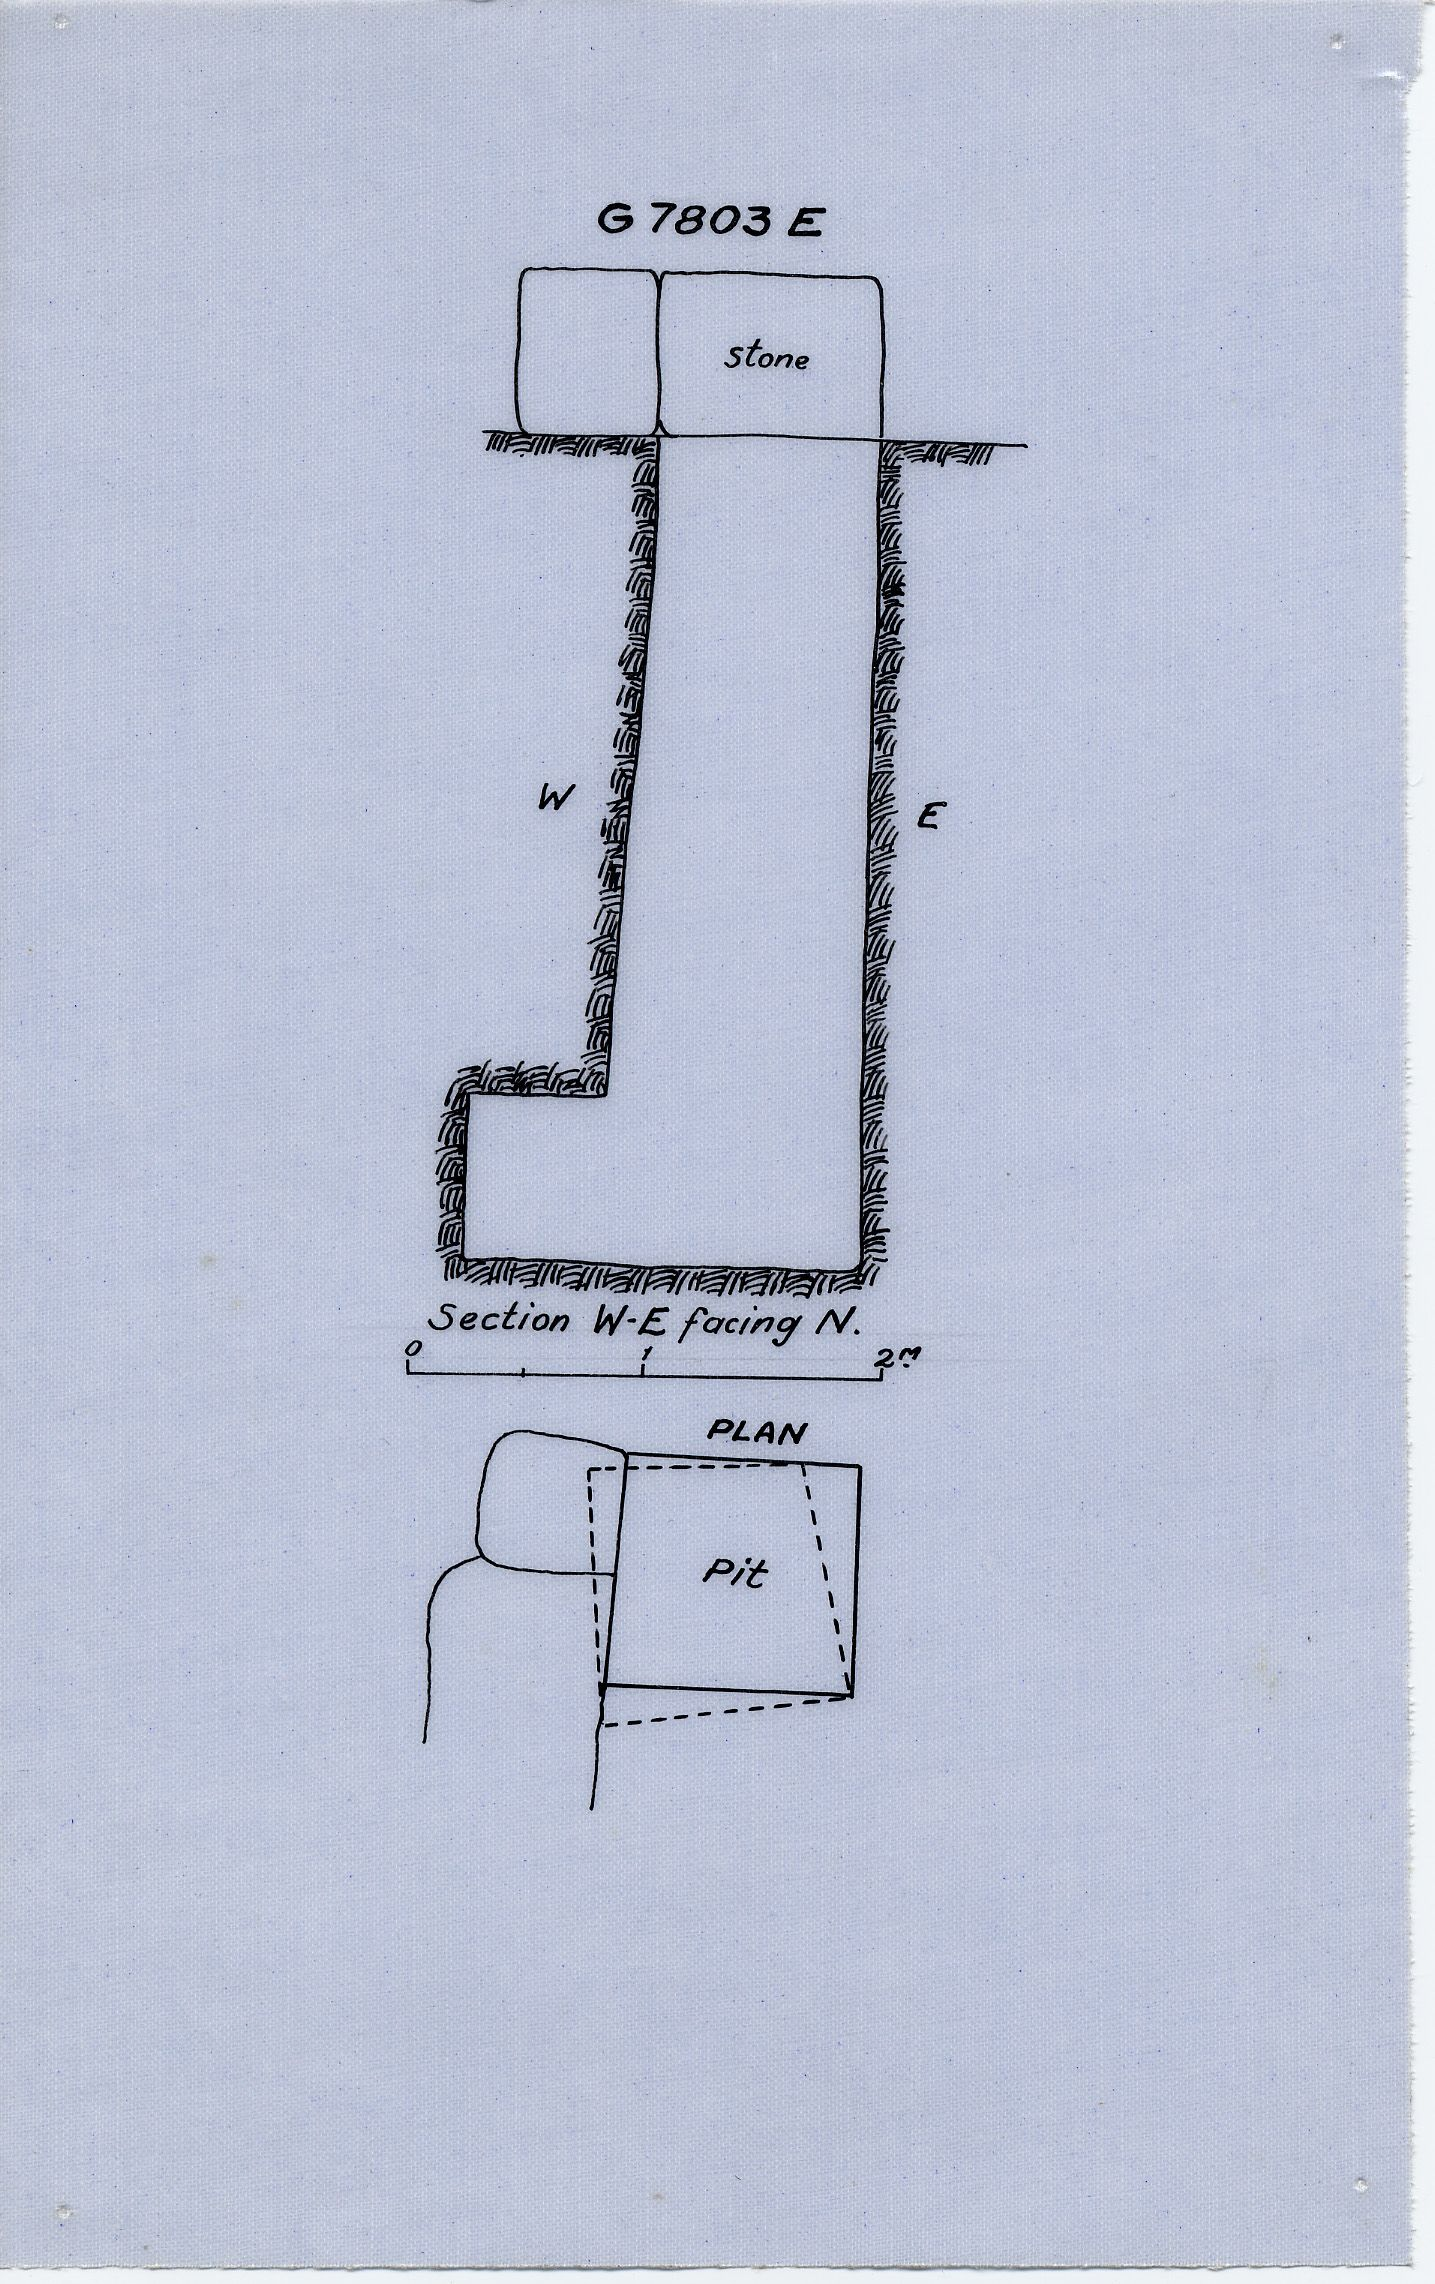 Maps and plans: G 7803, Shaft E